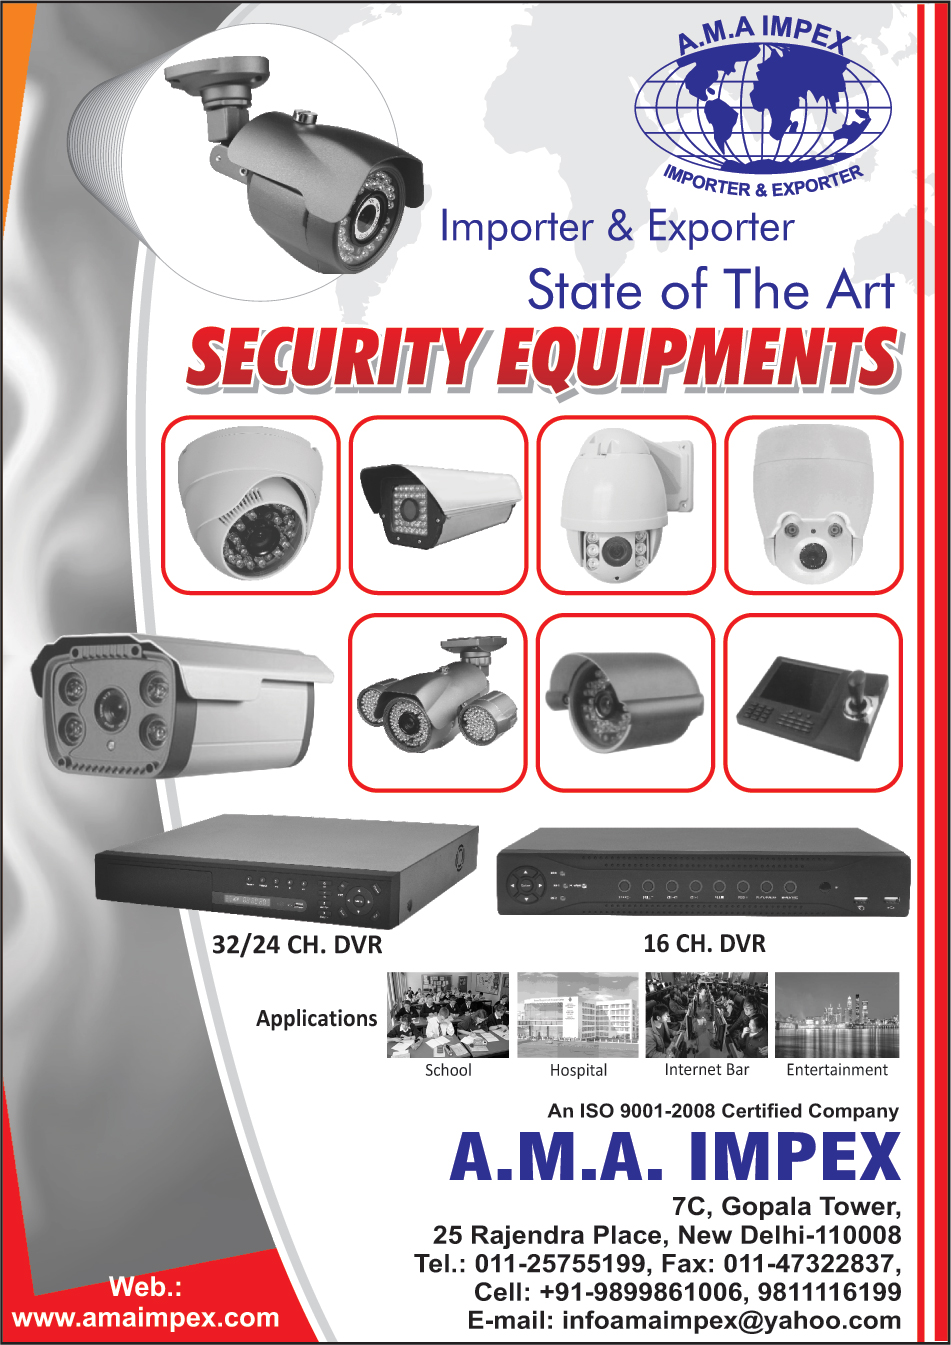 Security Equipments, CCTV Cameras, DVR, Digital Video Recorders